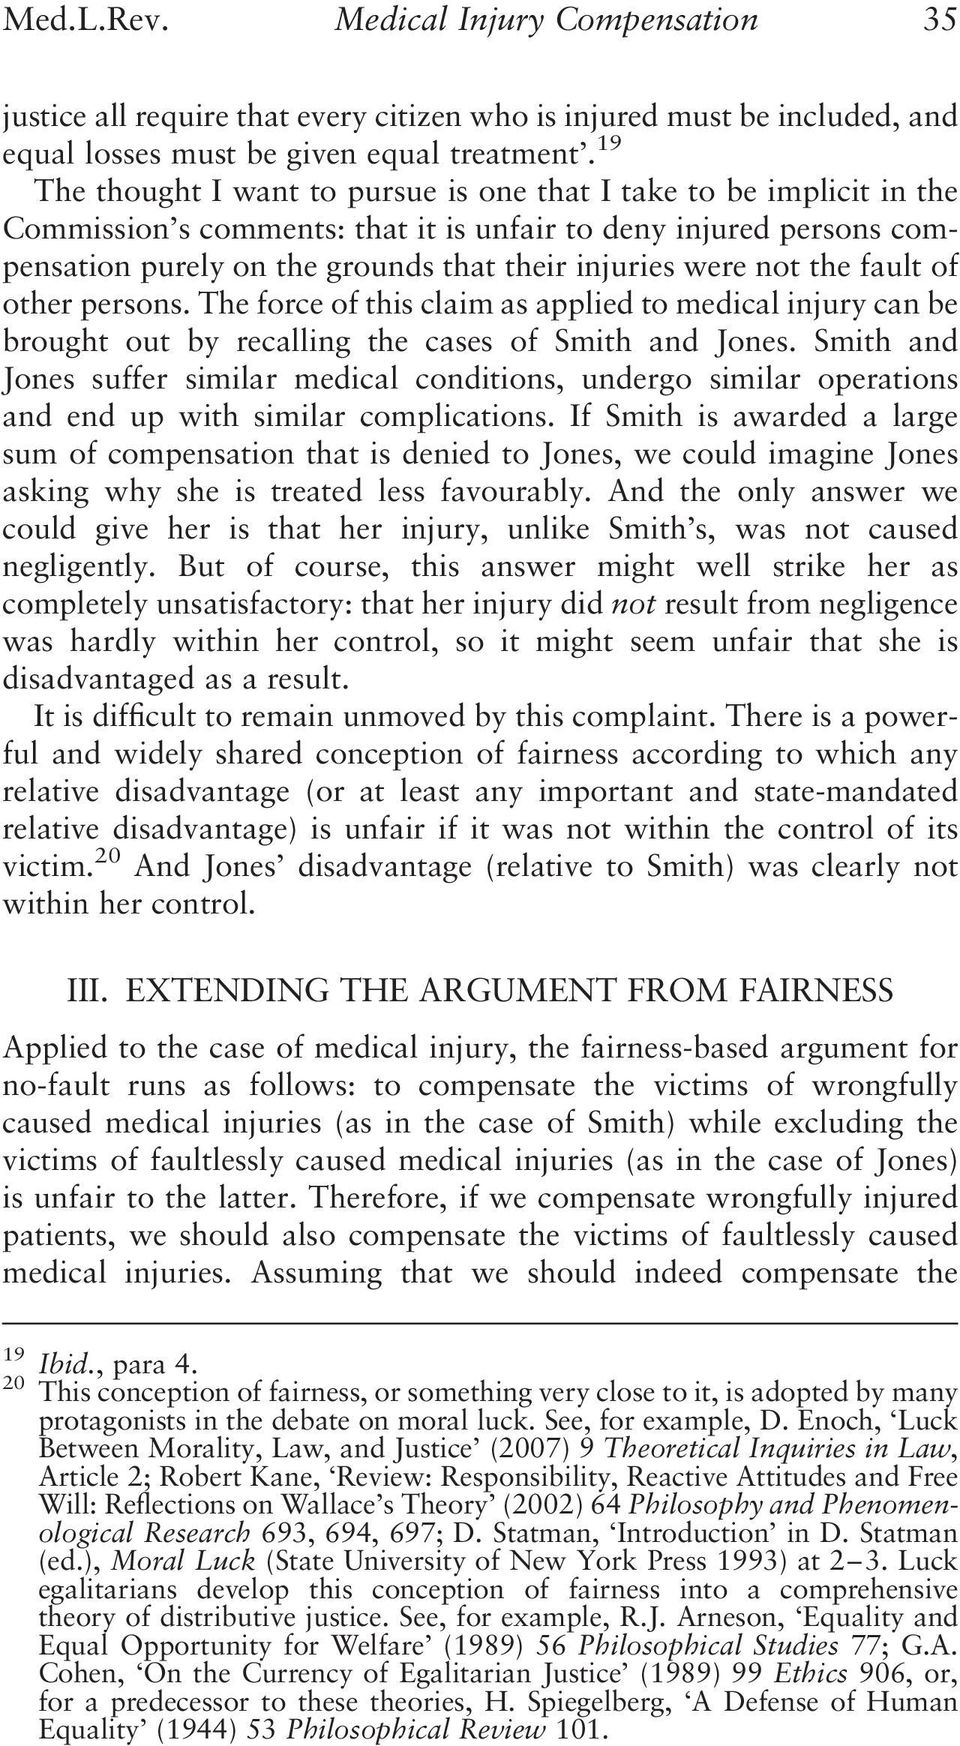 not the fault of other persons. The force of this claim as applied to medical injury can be brought out by recalling the cases of Smith and Jones.